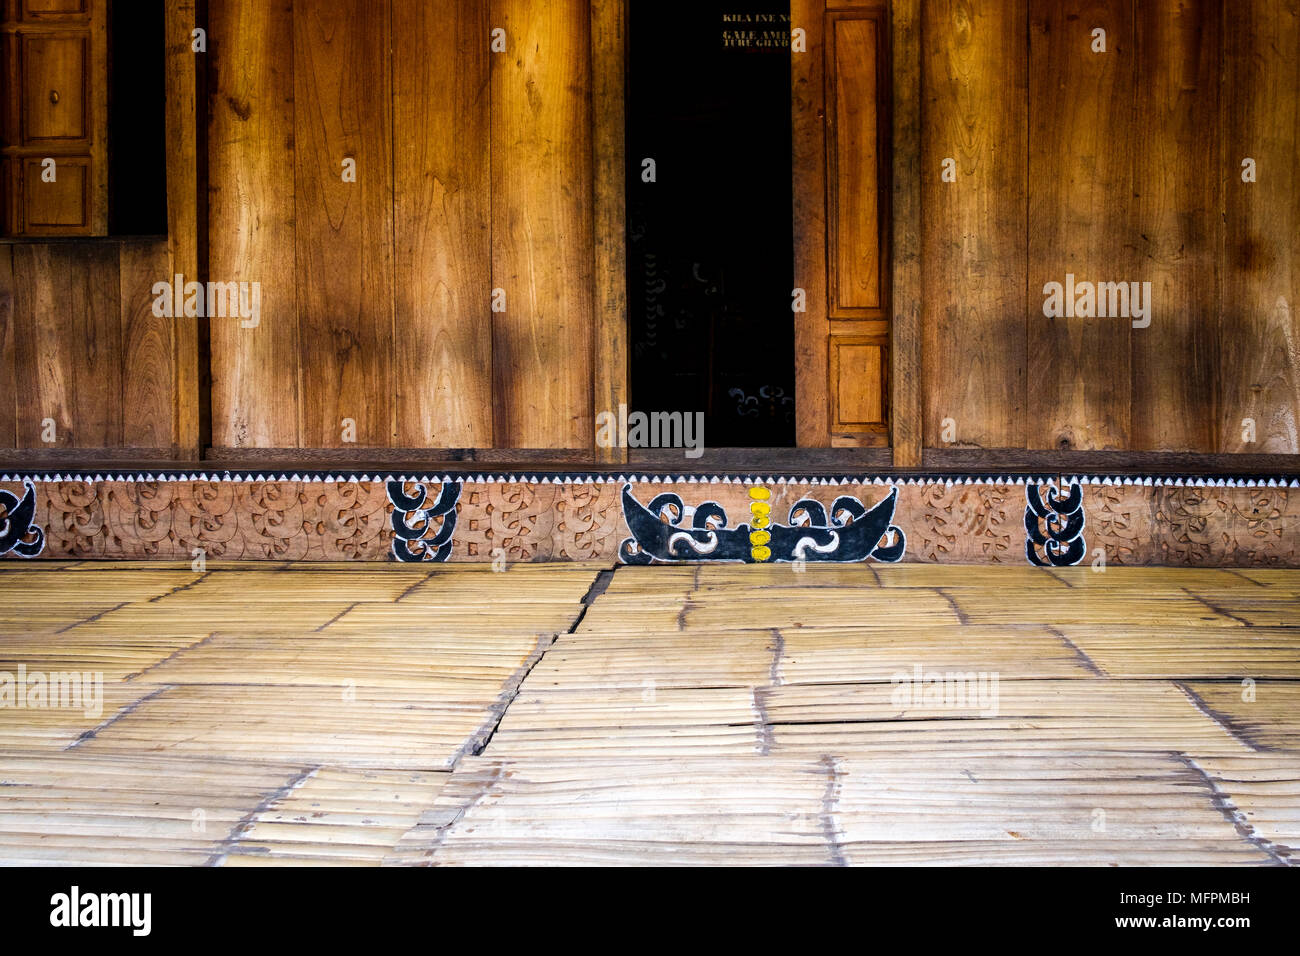 Wood carvings and paintings decorating the entrance to a traditional house in Bena, Ngada District, Flores Island (East Nusa Tenggara), Indonesia. - Stock Image